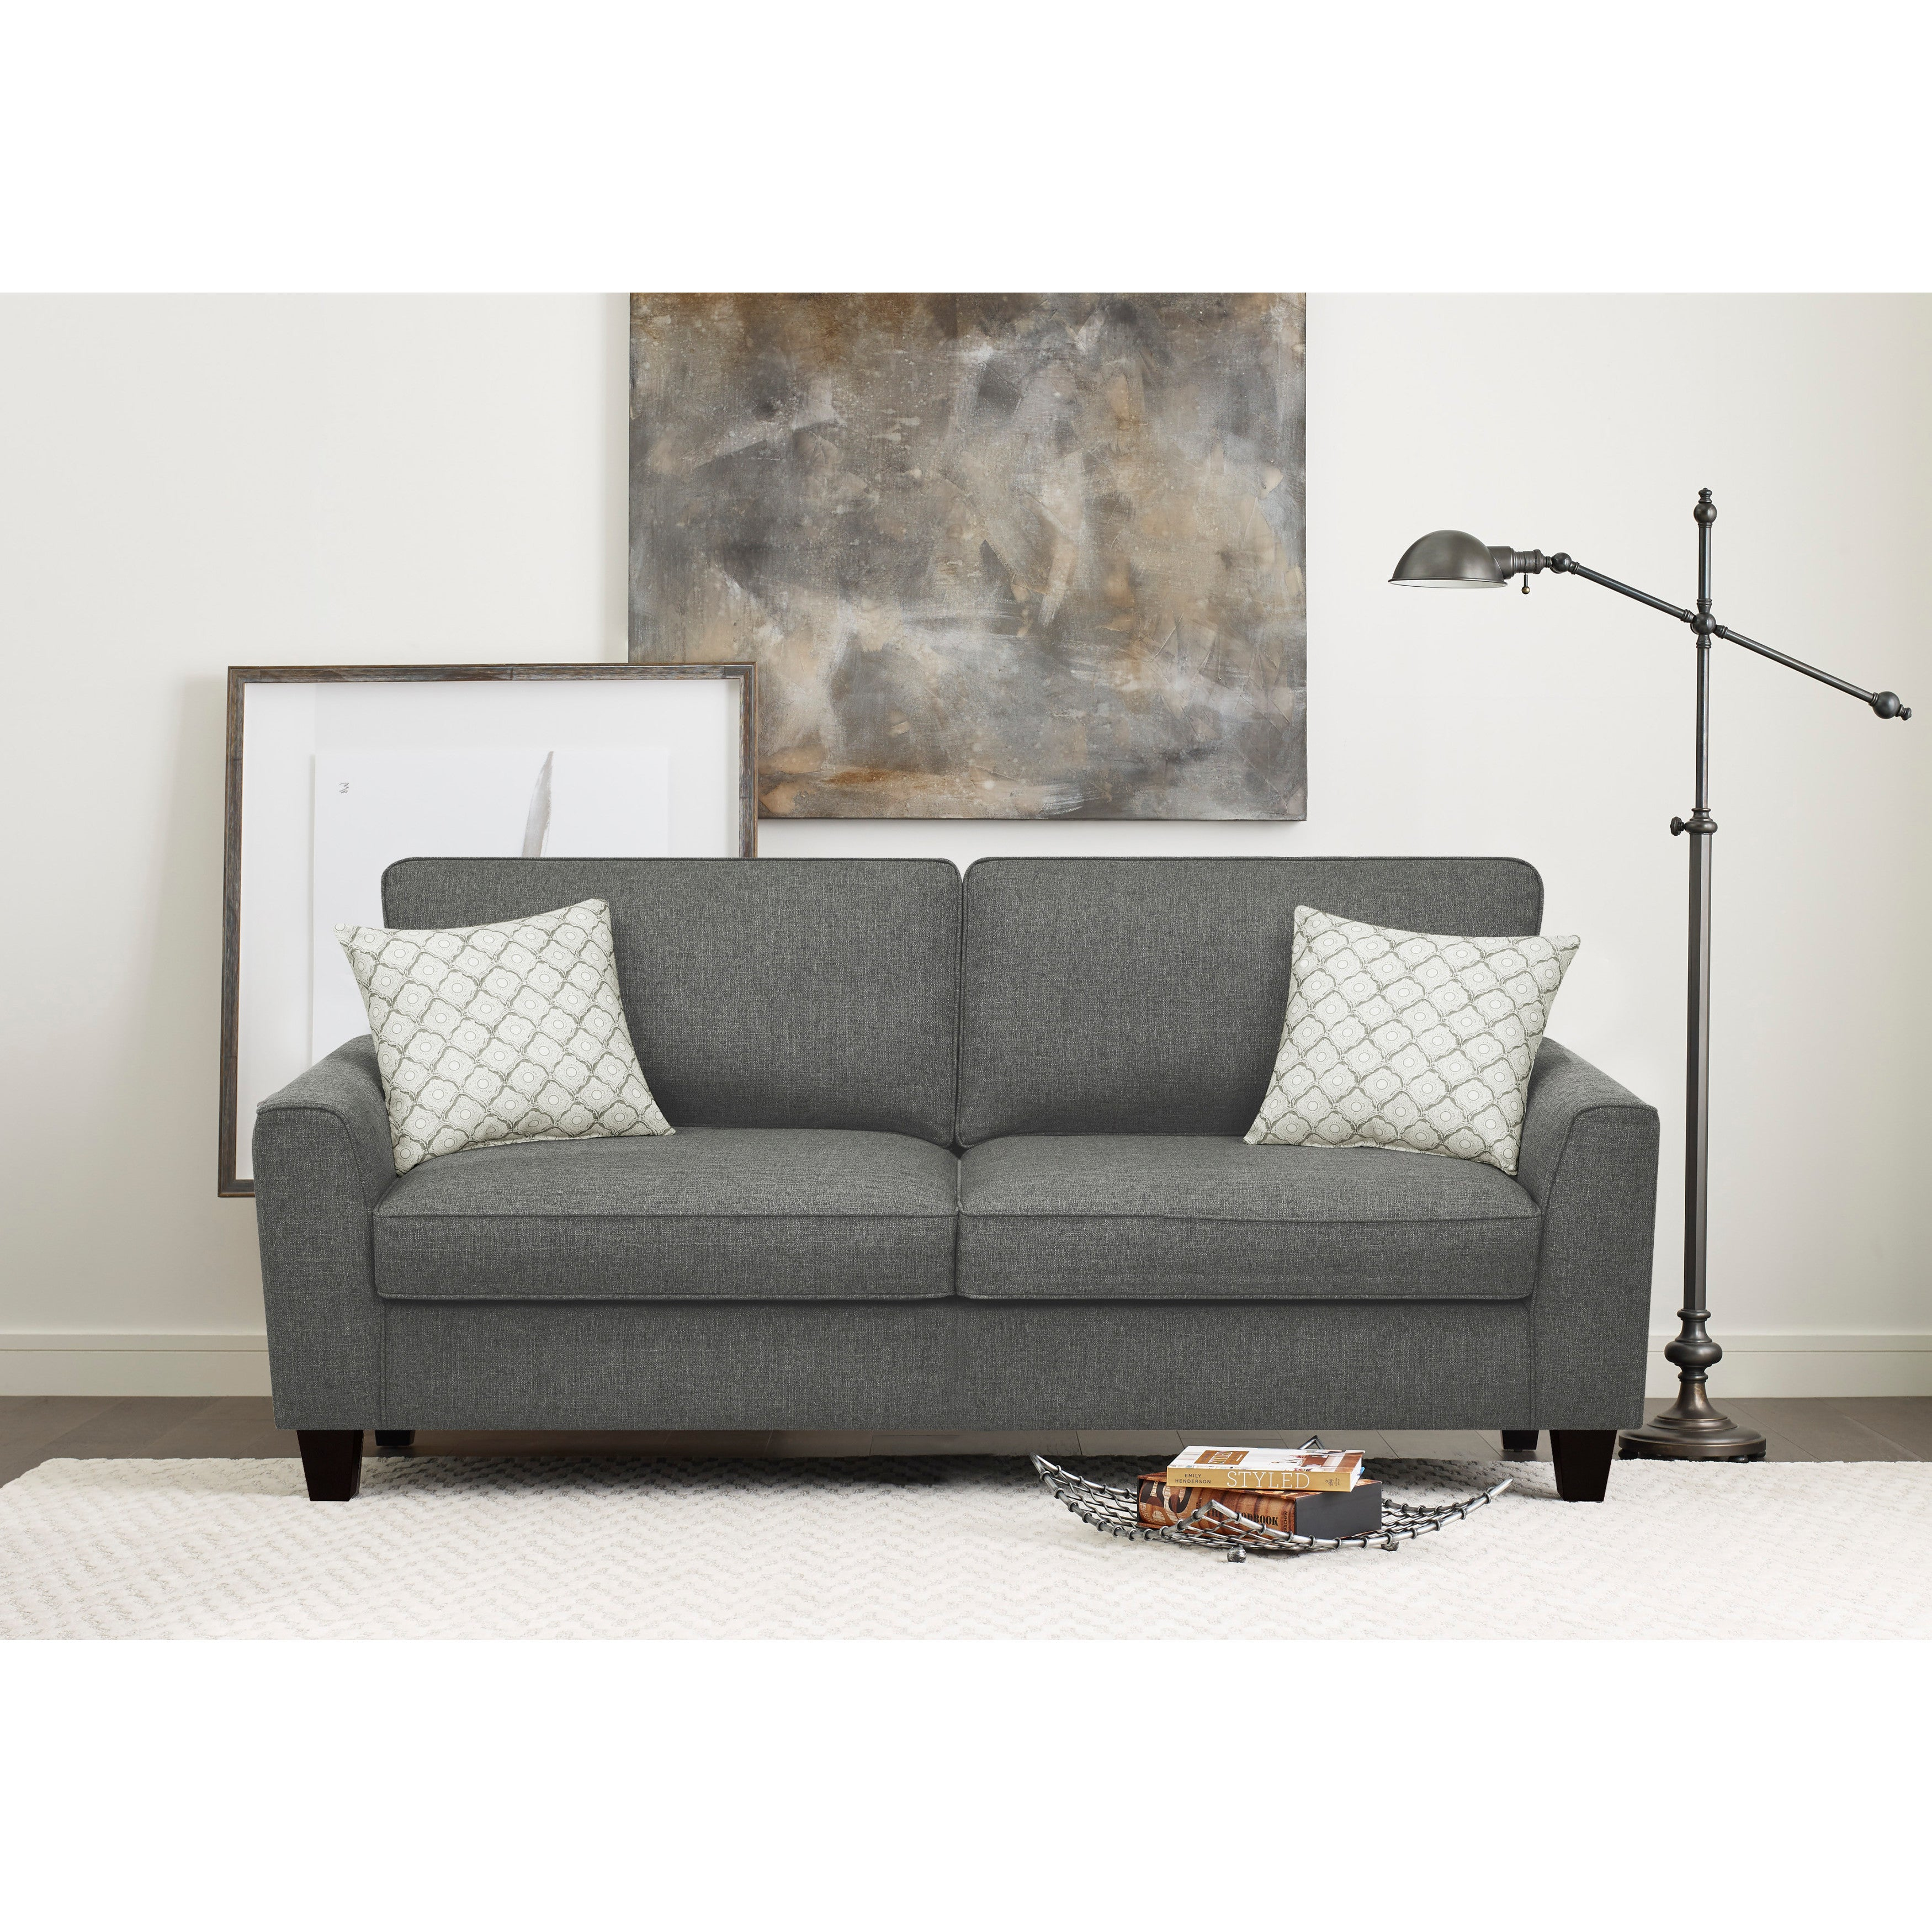 contemporary fit convertible couch furniture by living relaxed accent serta upholstery room reviews sofa with slipcover excellent pillows